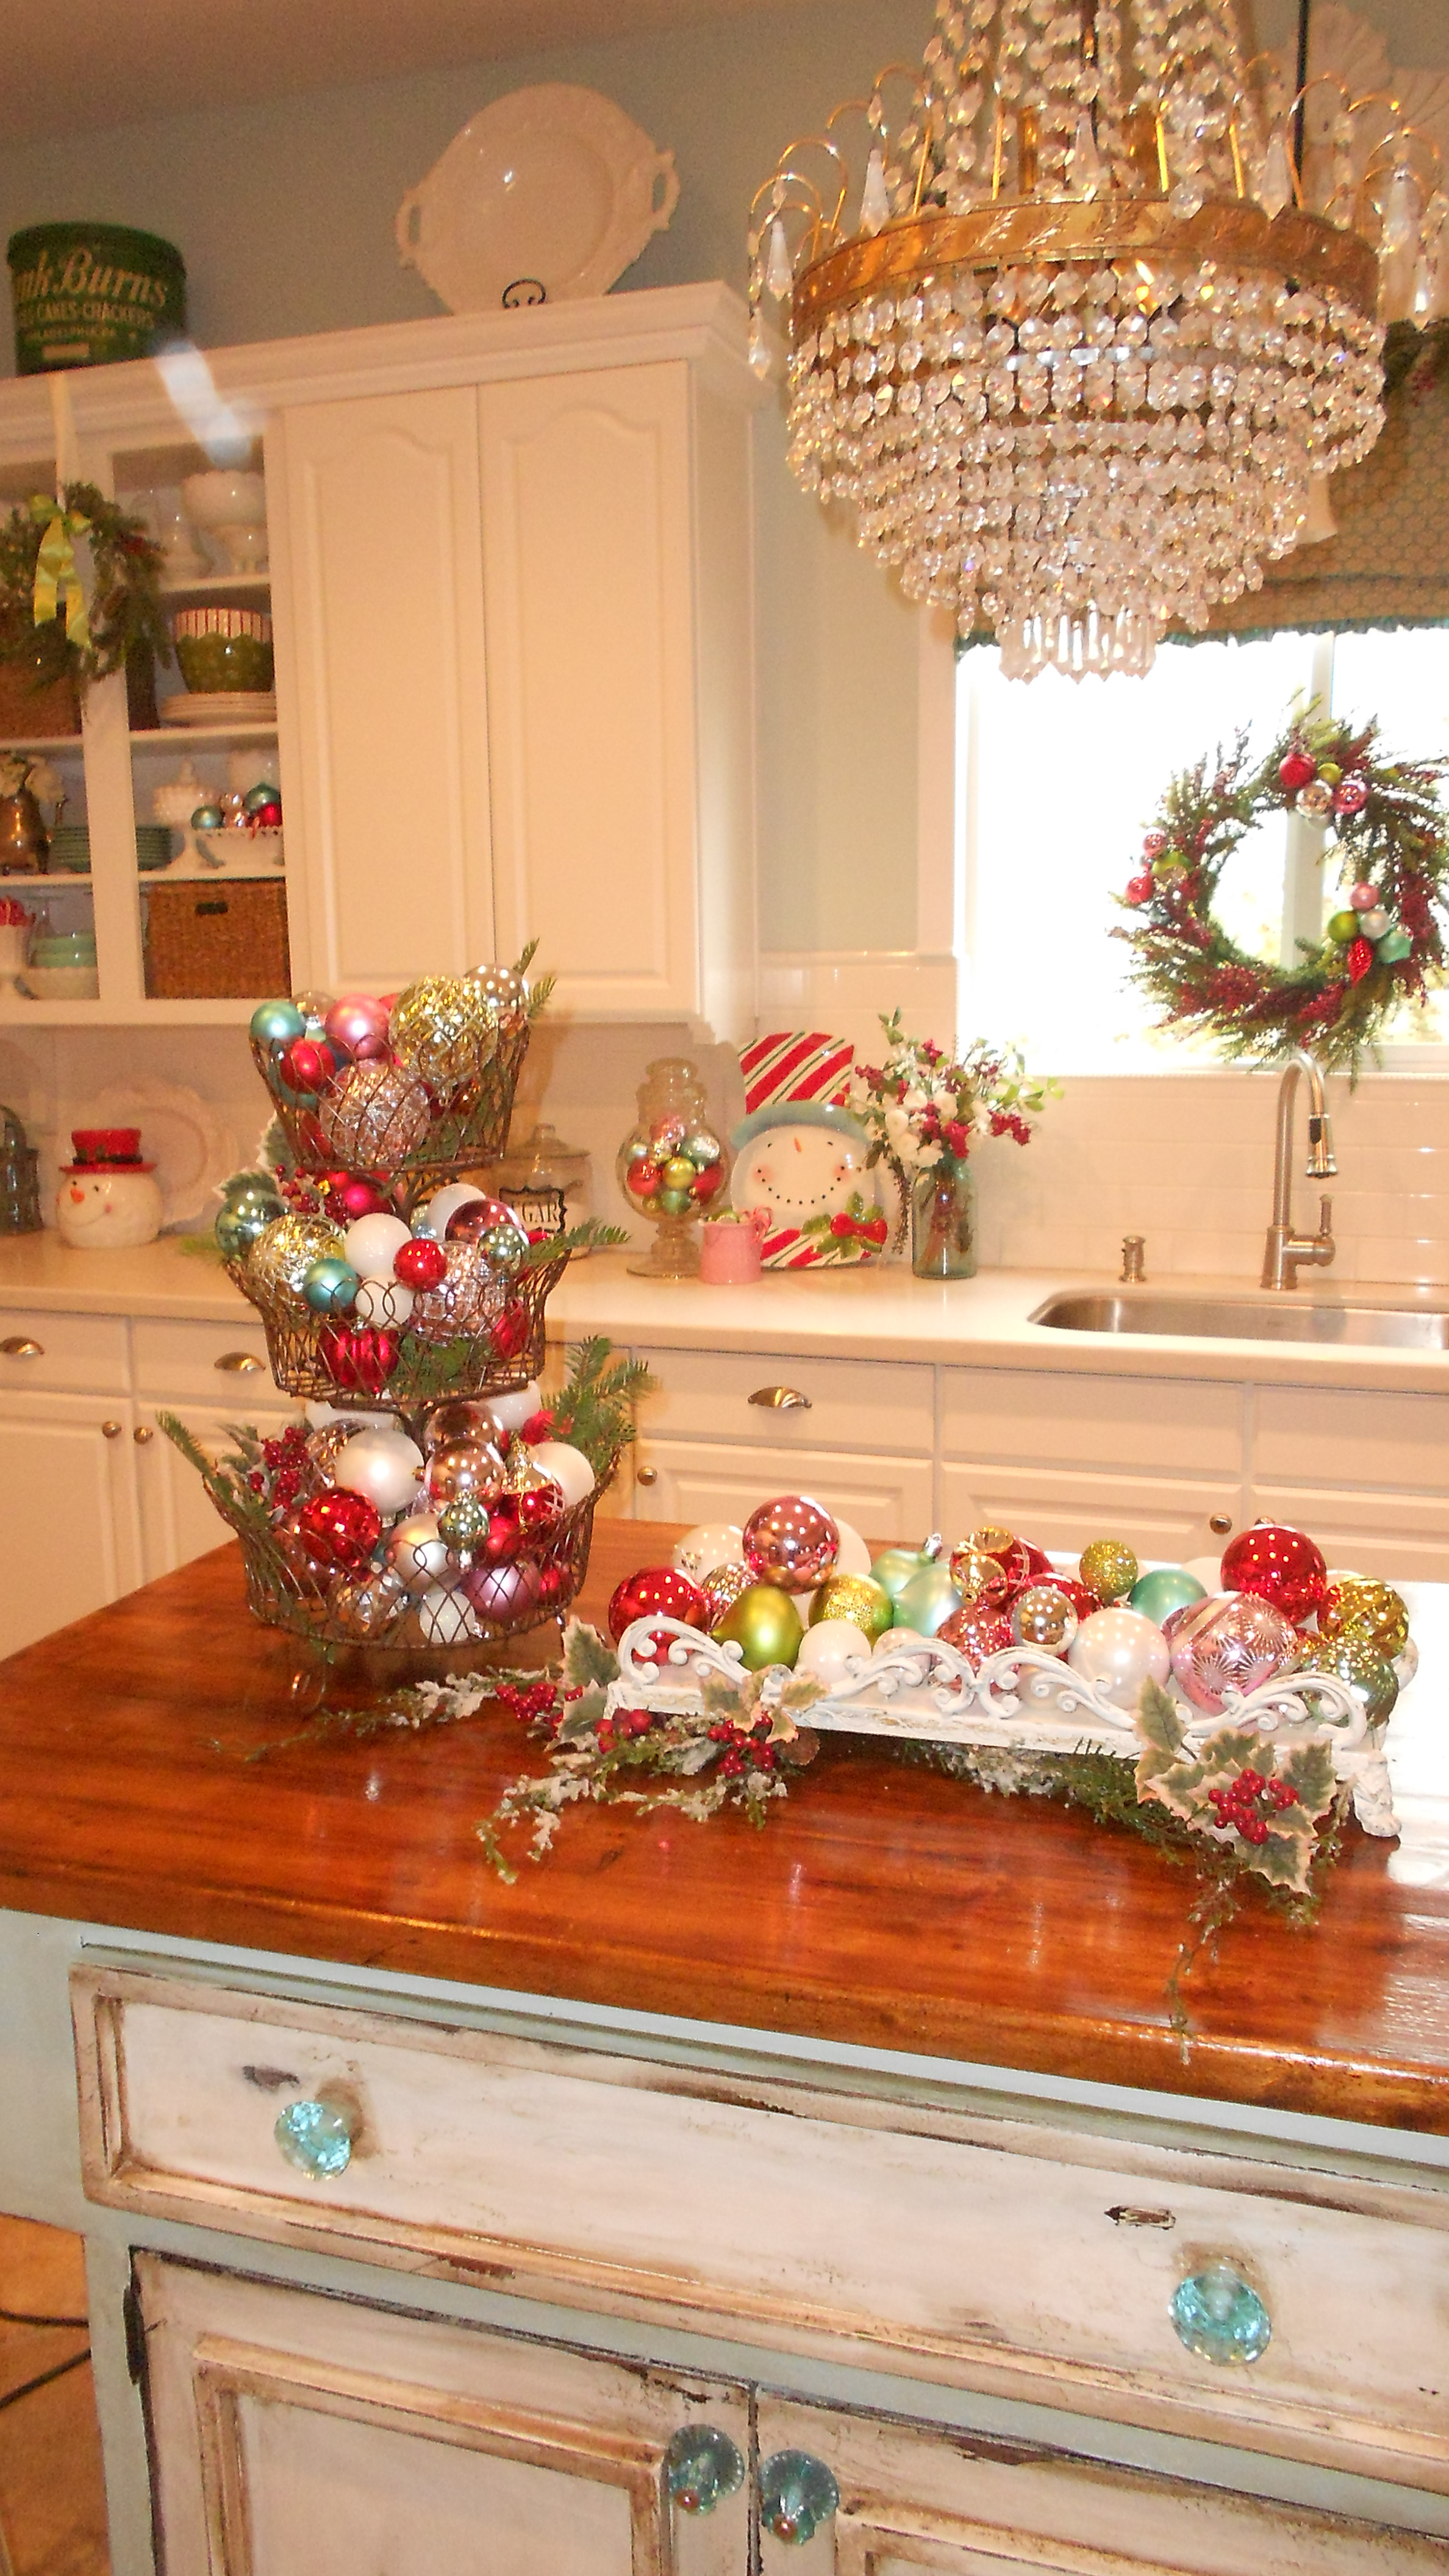 Top 40 Christmas Decorations Ideas For Kitchen ... on Kitchen Decoration Ideas  id=61038